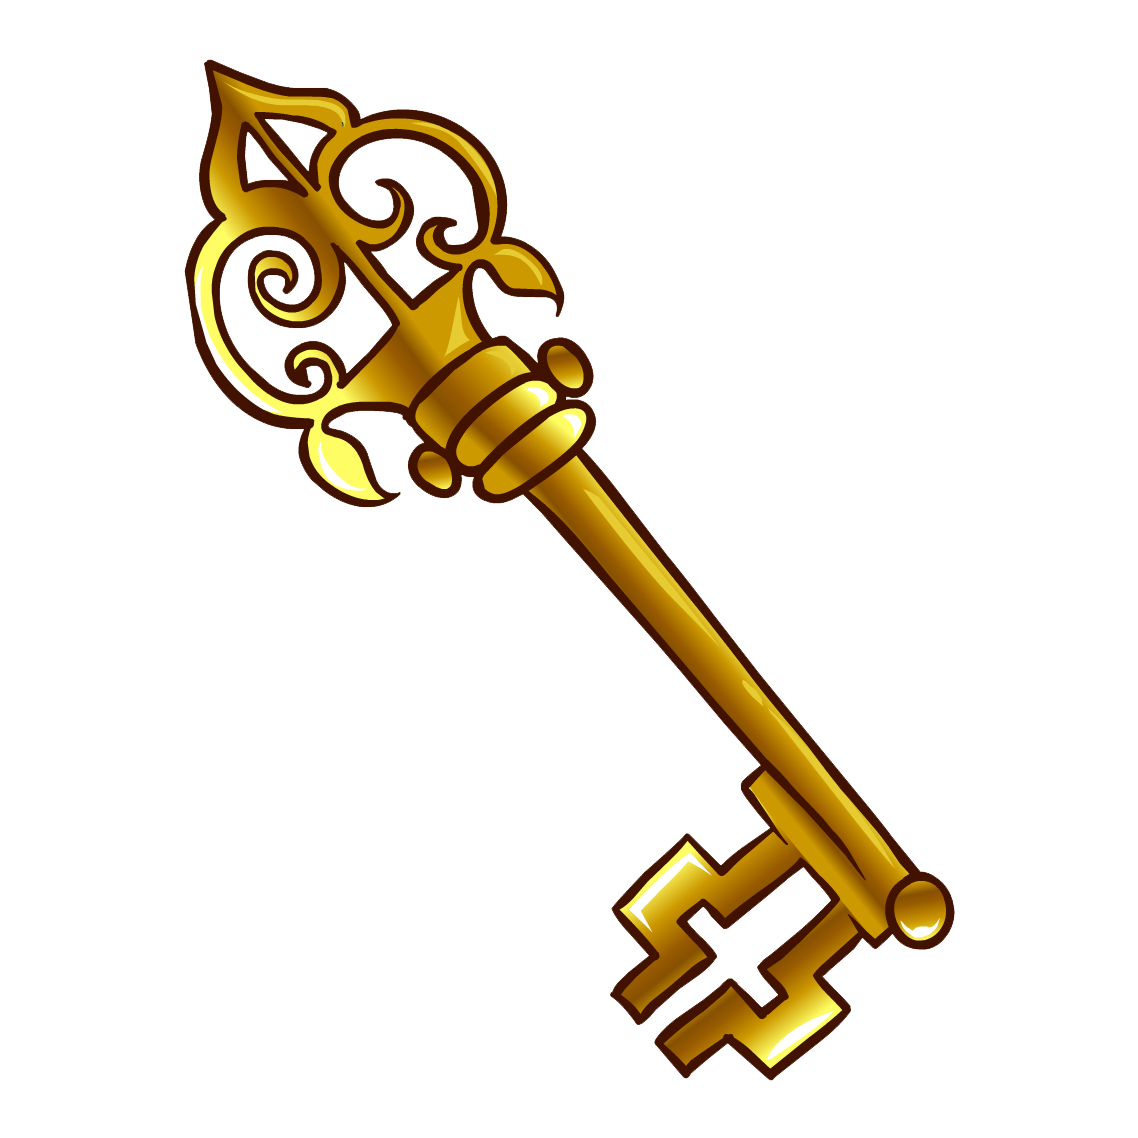 Key Transparent PNG - Key HD PNG